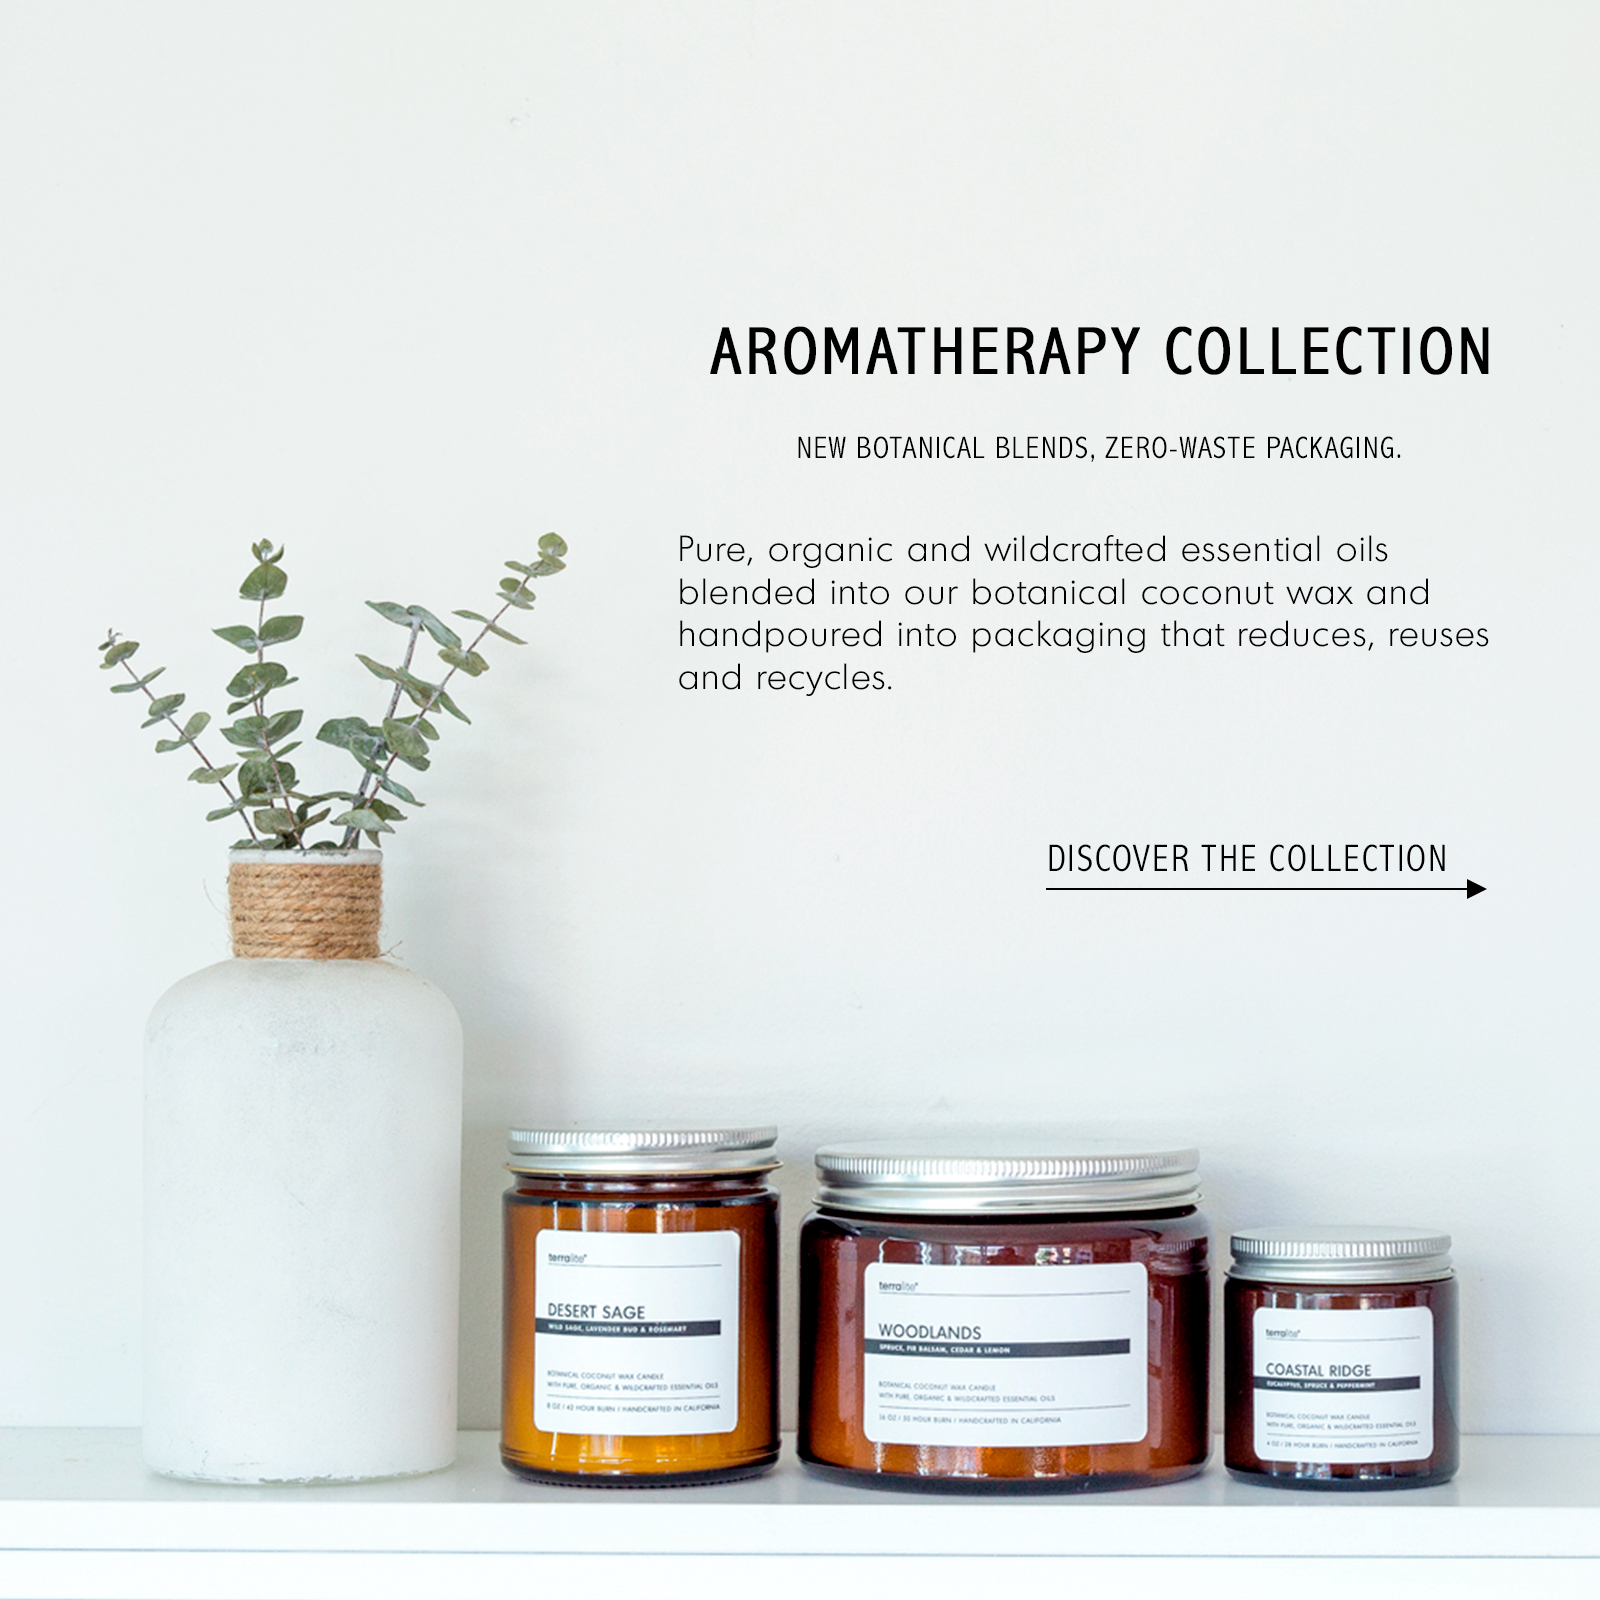 TERRALITE AROMATHERAPY COLLECTION - COCONUT WAX CANDLES WITH PURE, ORGANIC AND WILDCRAFTED ESSENTIAL OILS. 100% NATURAL